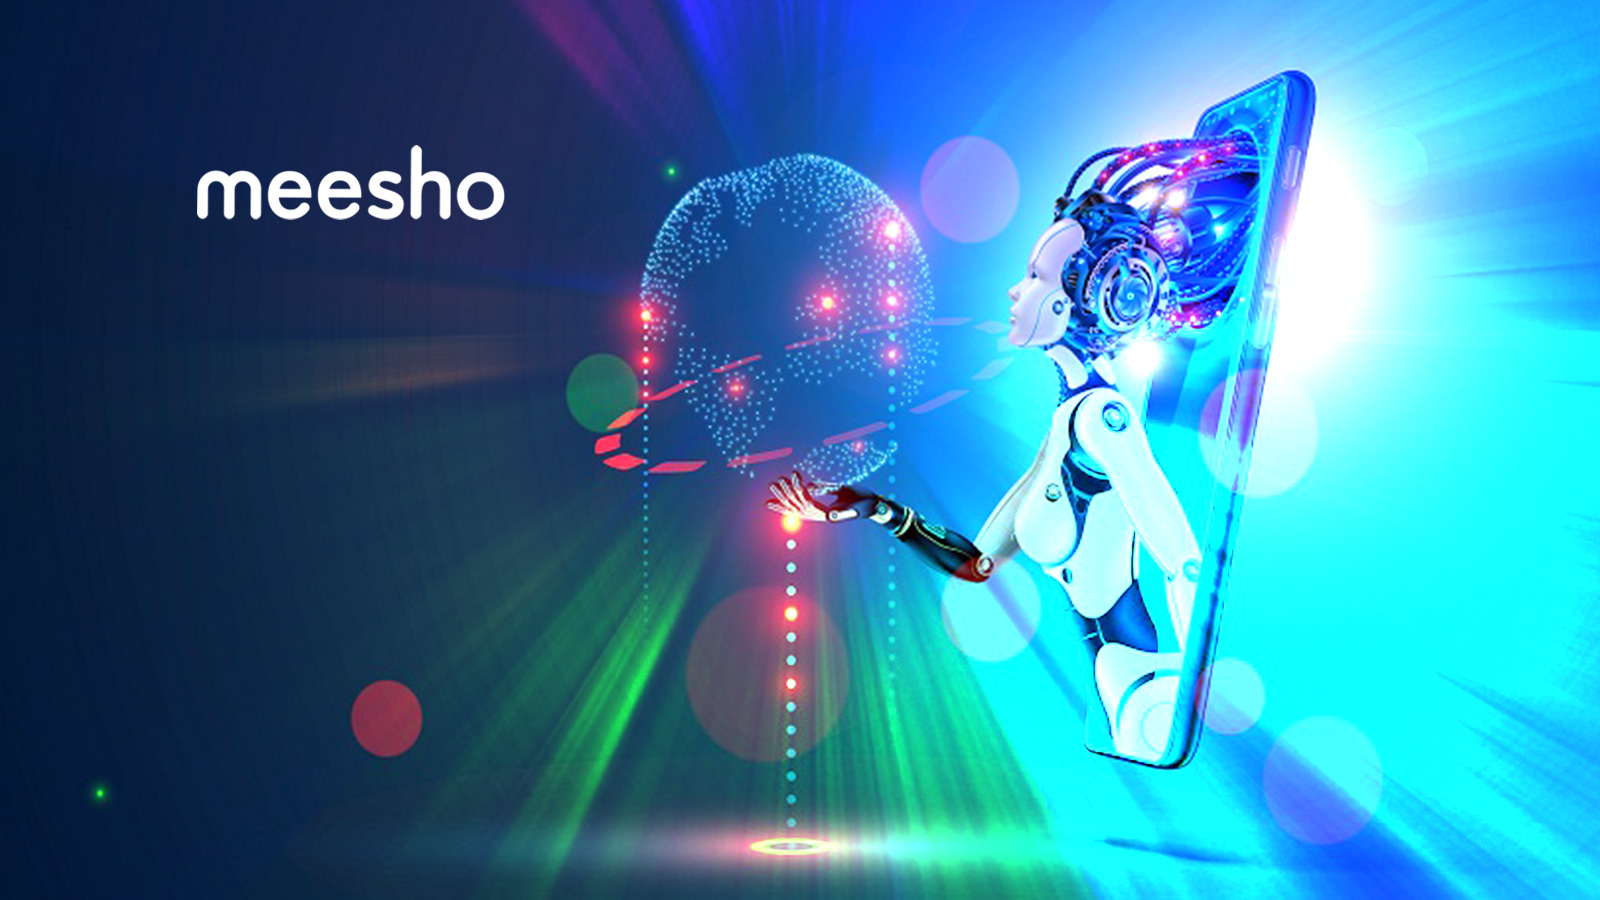 Meesho, a Facebook-backed startup, raises $125 million funding from Naspers Ventures and others